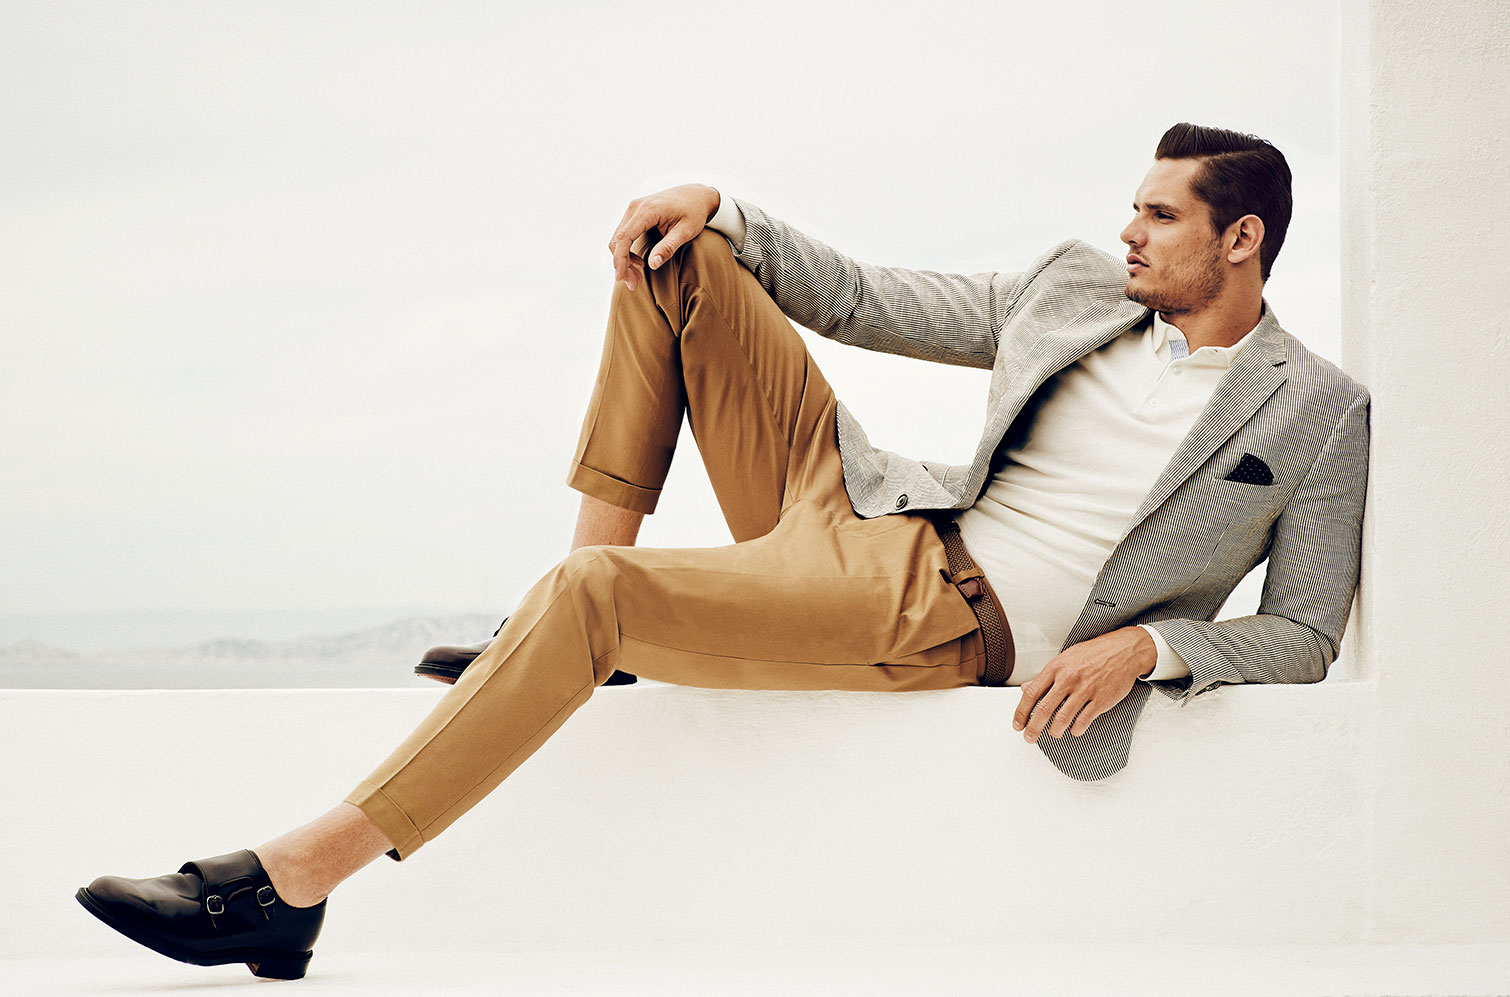 FLORENT MANAUDOU FOR GQ FRANCE